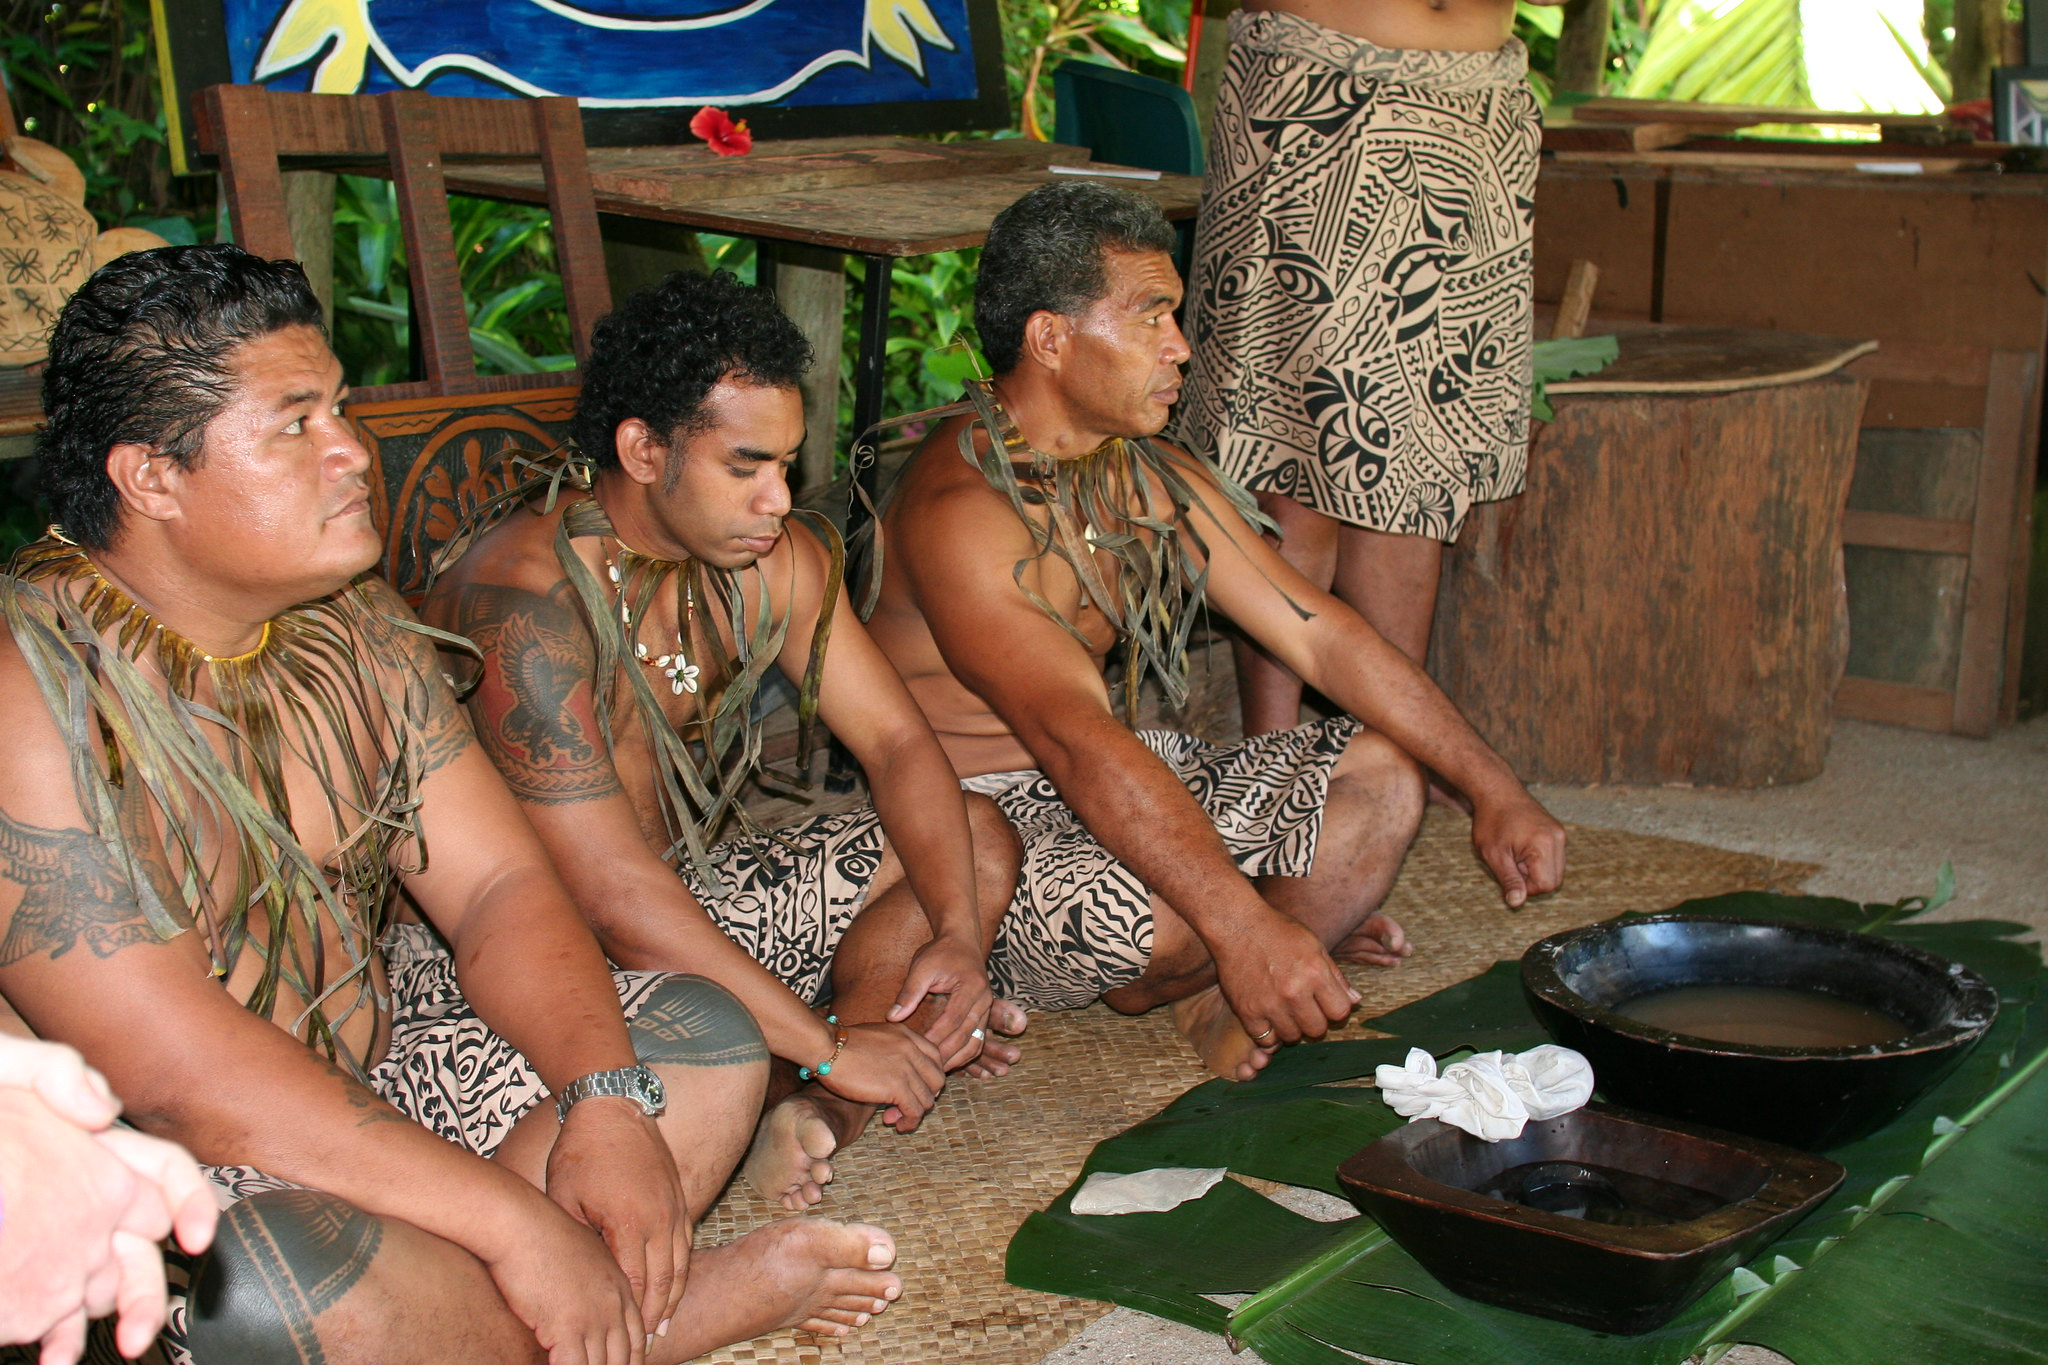 Kava for Anxiety: Does it Work and Is It Safe?